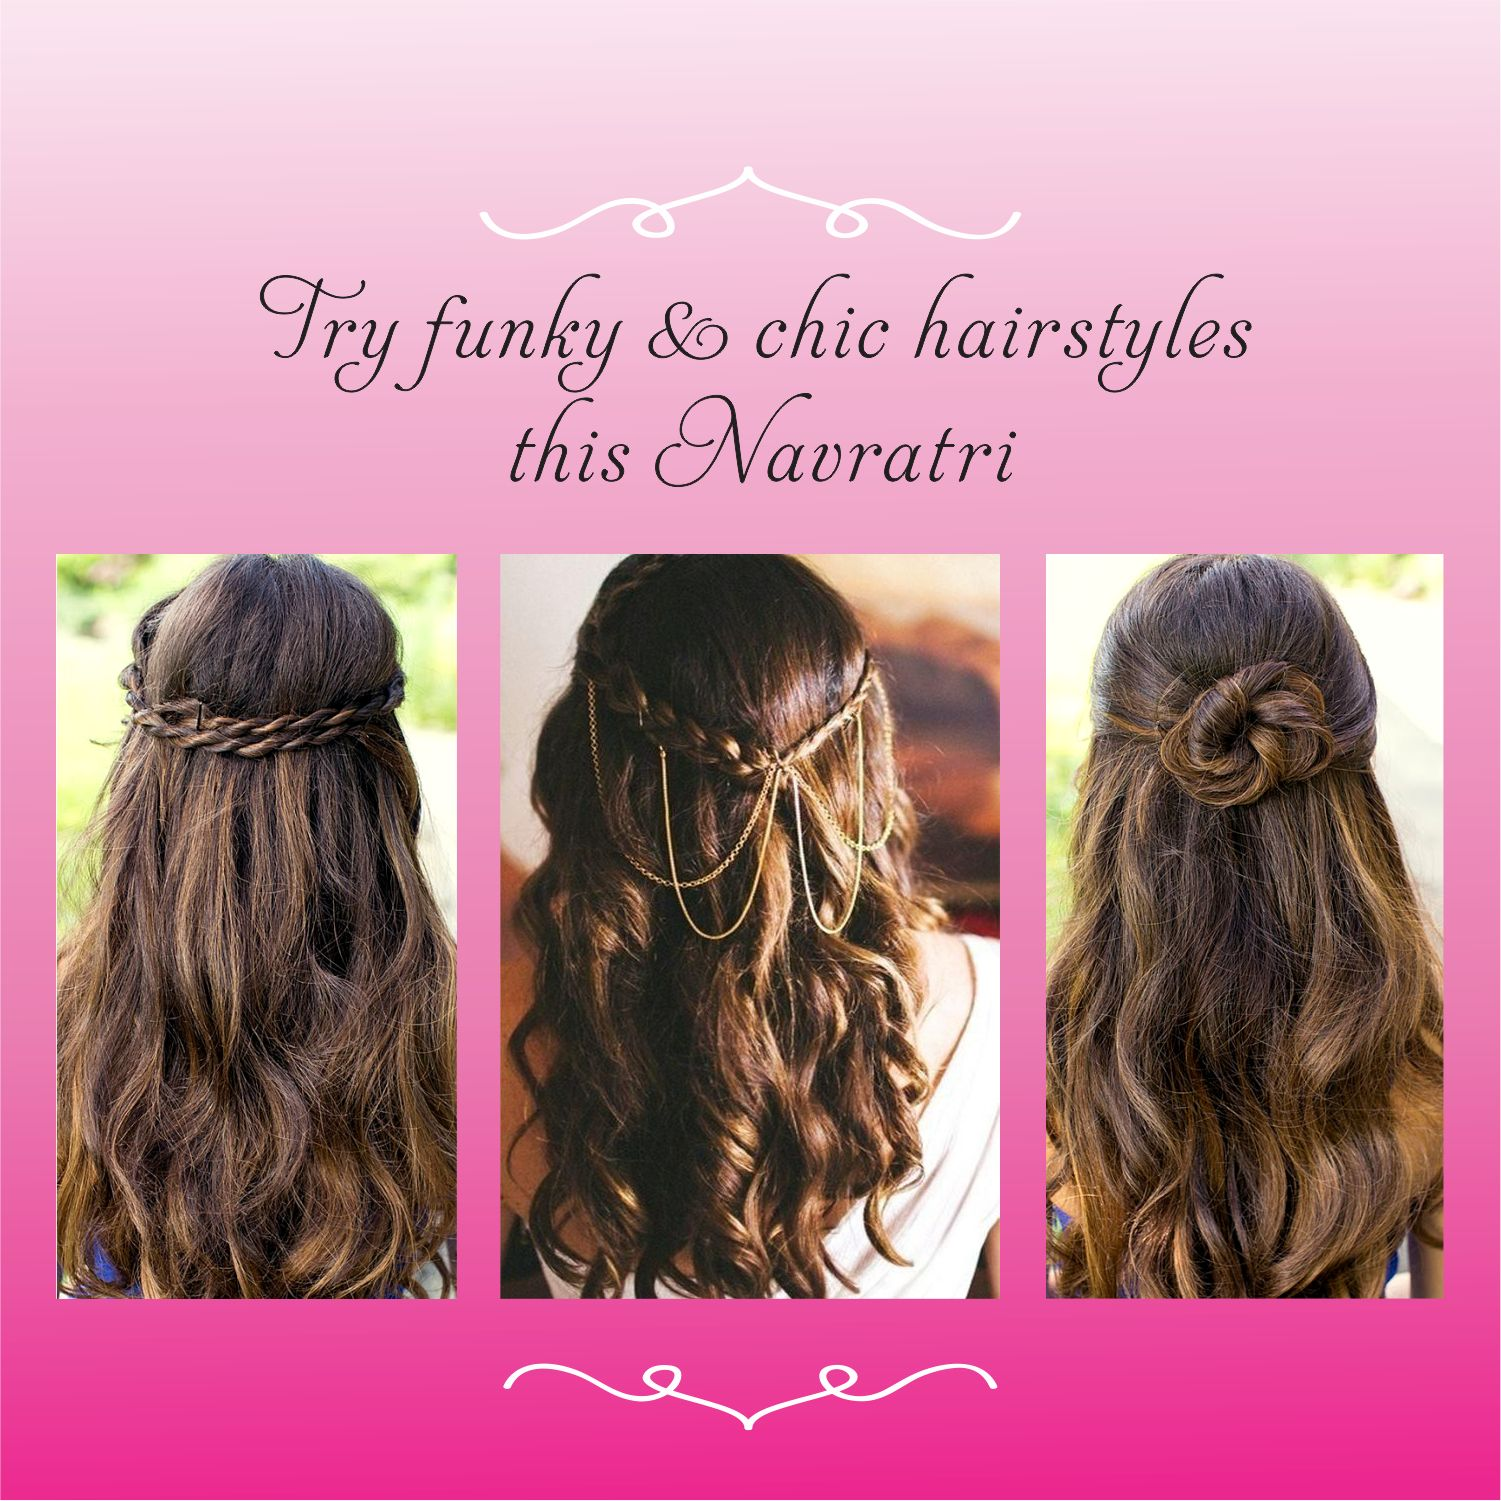 Try funky & chic hairstyles this Navratri #VipulFashions #Navratri #FunkyHairStyle